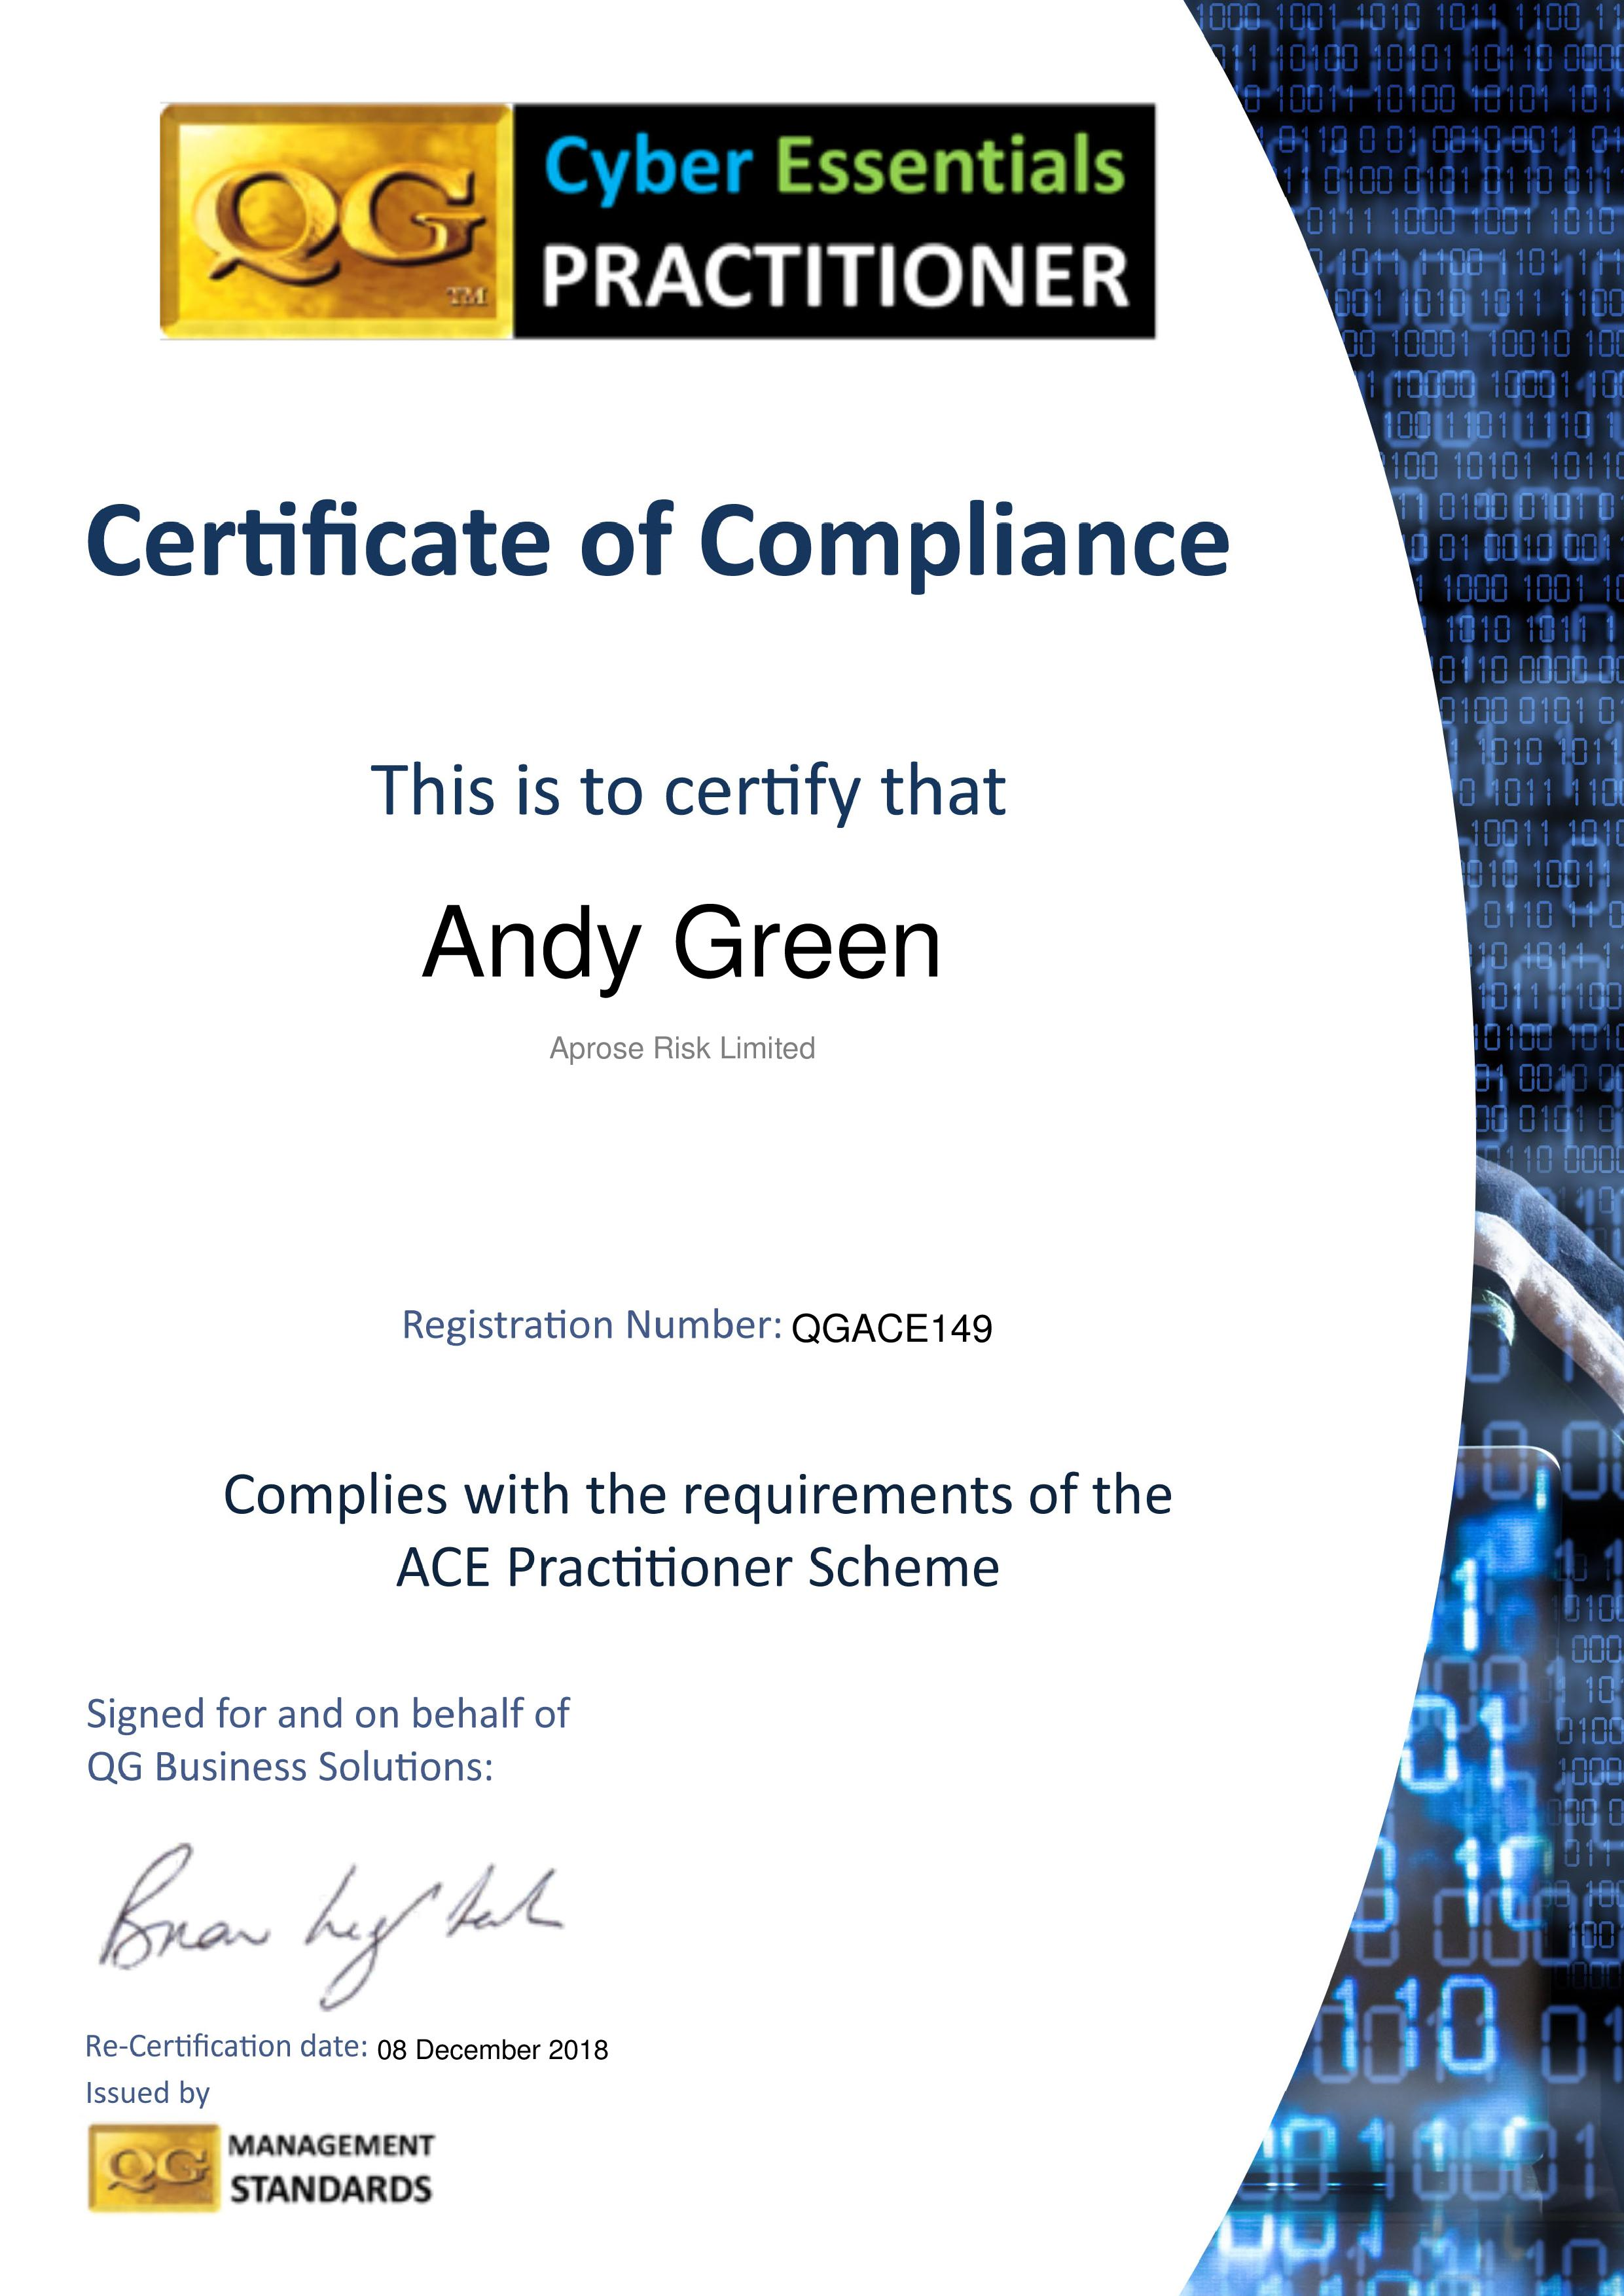 QGACE149 Aprose Risk Limited